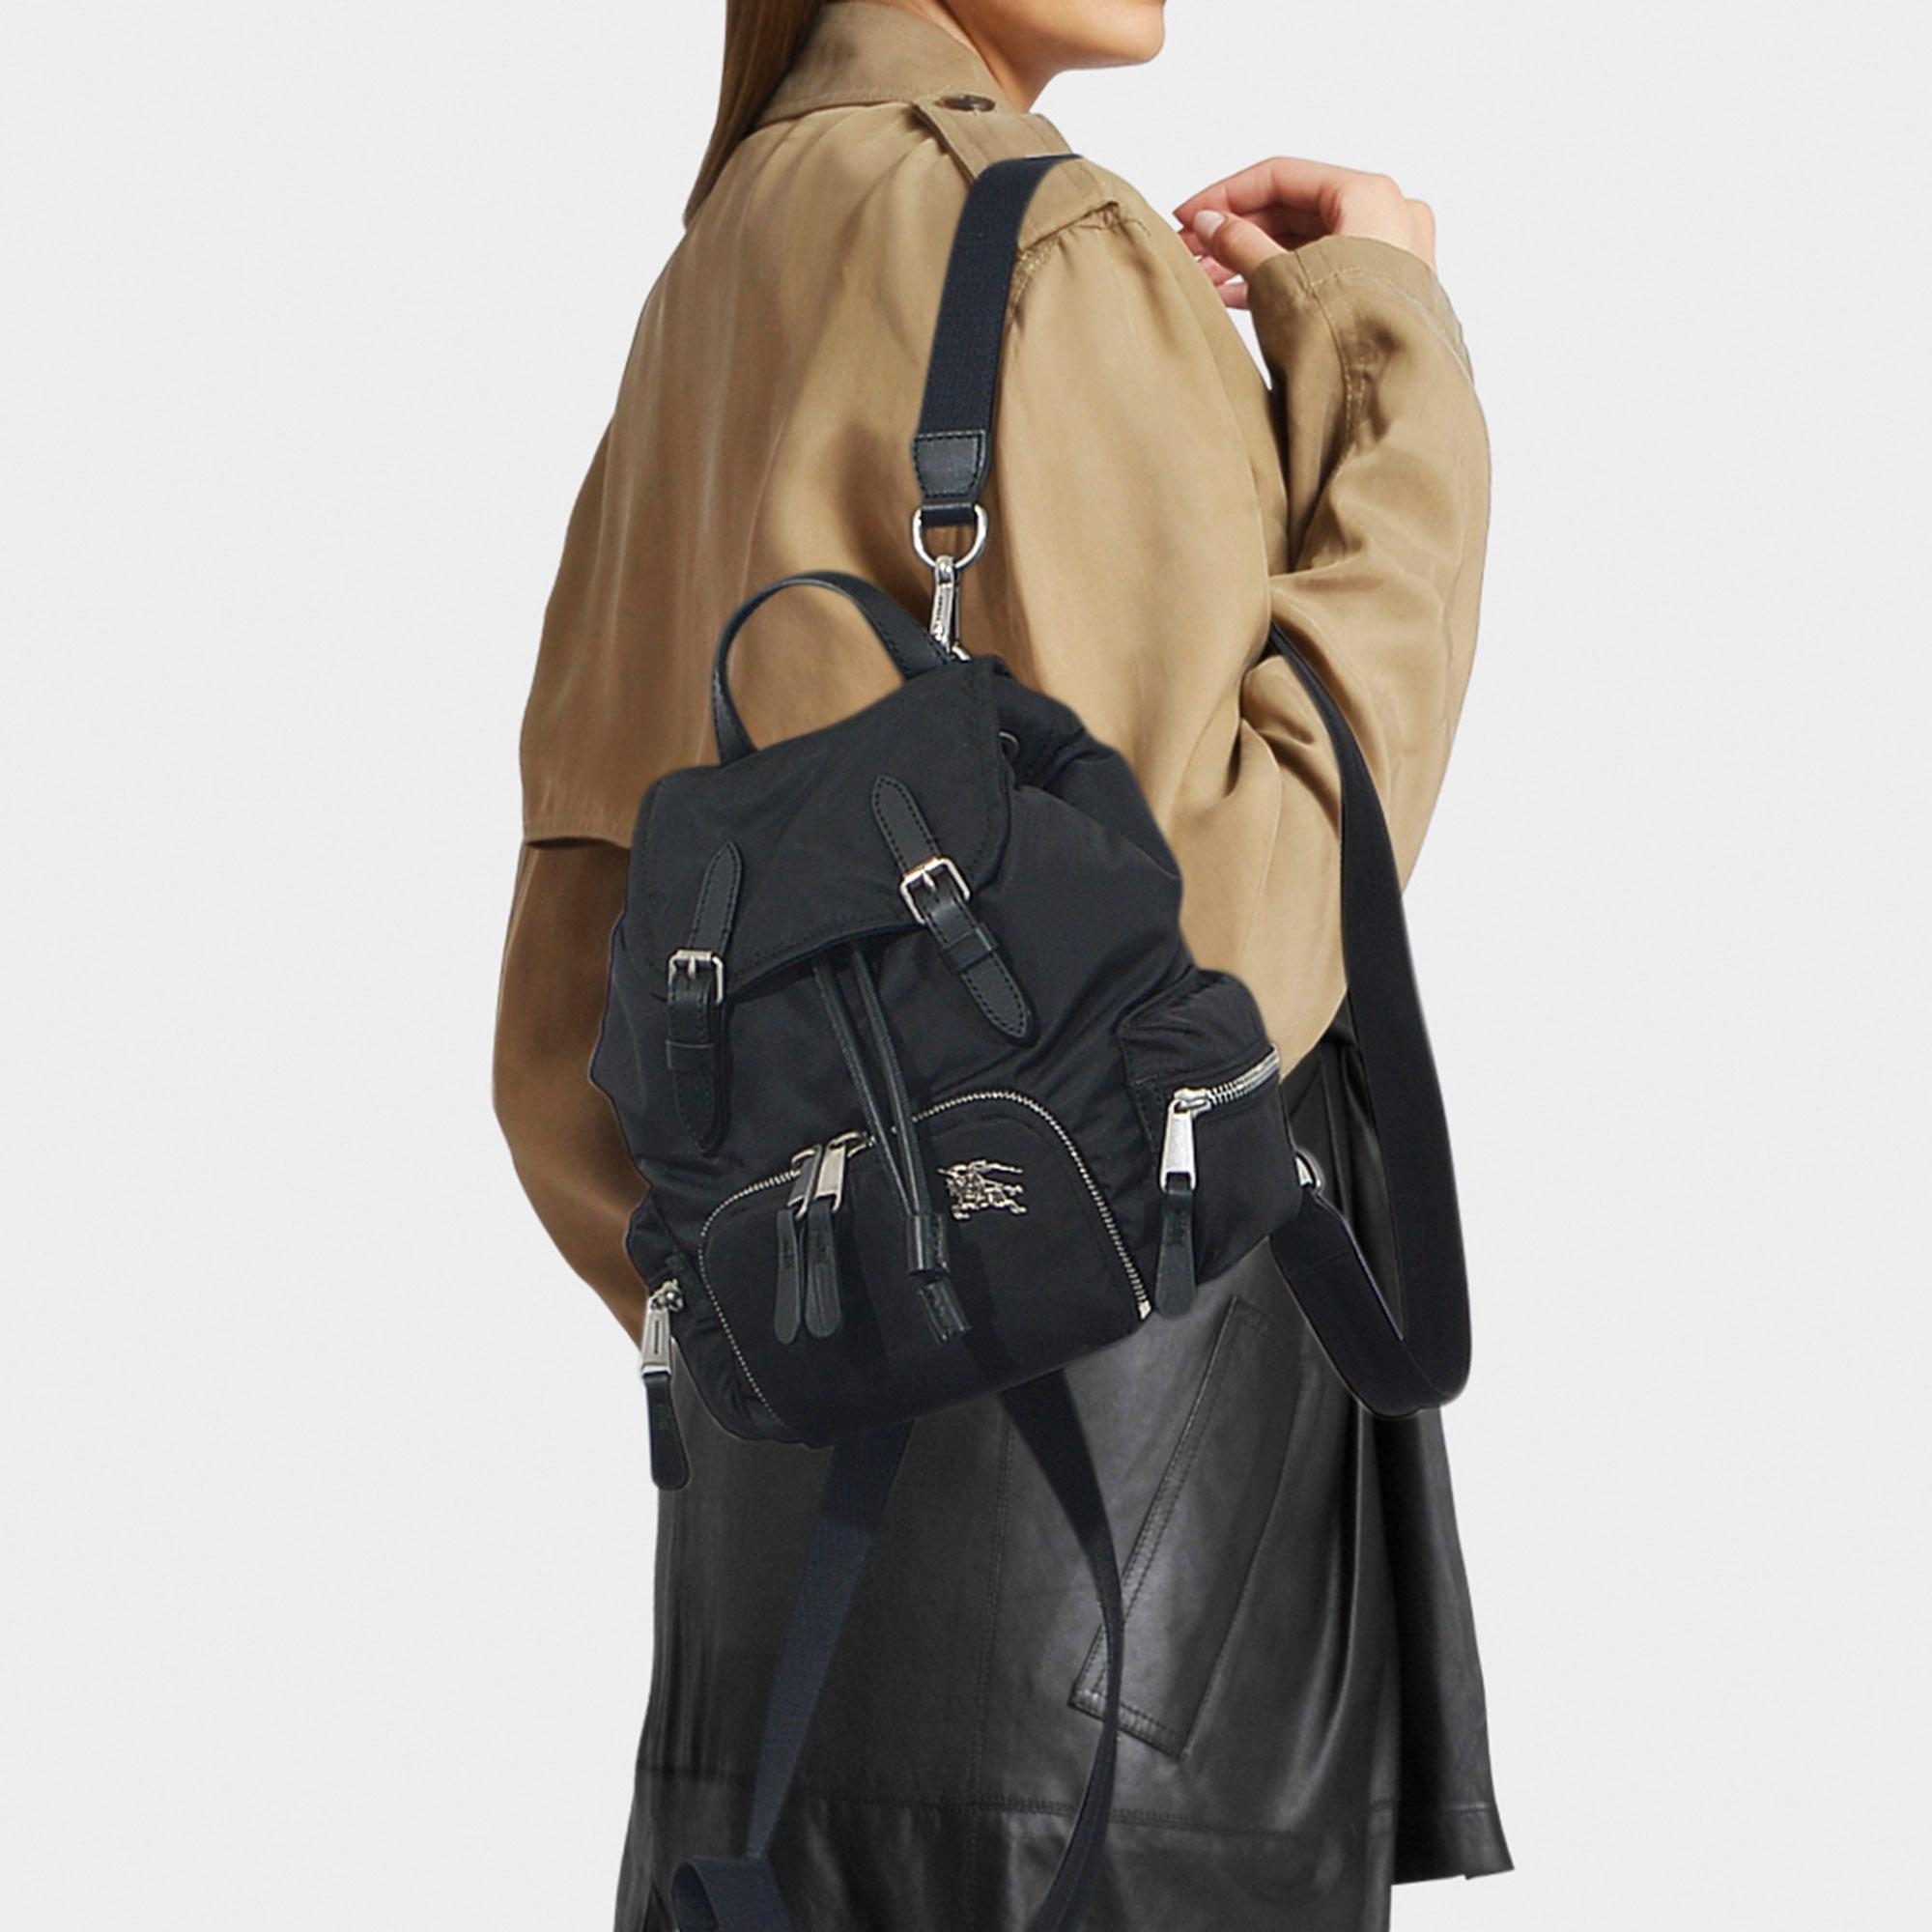 0e76499e2a5c Lyst - Burberry The Rucksack Small Backpack In Black Nylon in Black ...